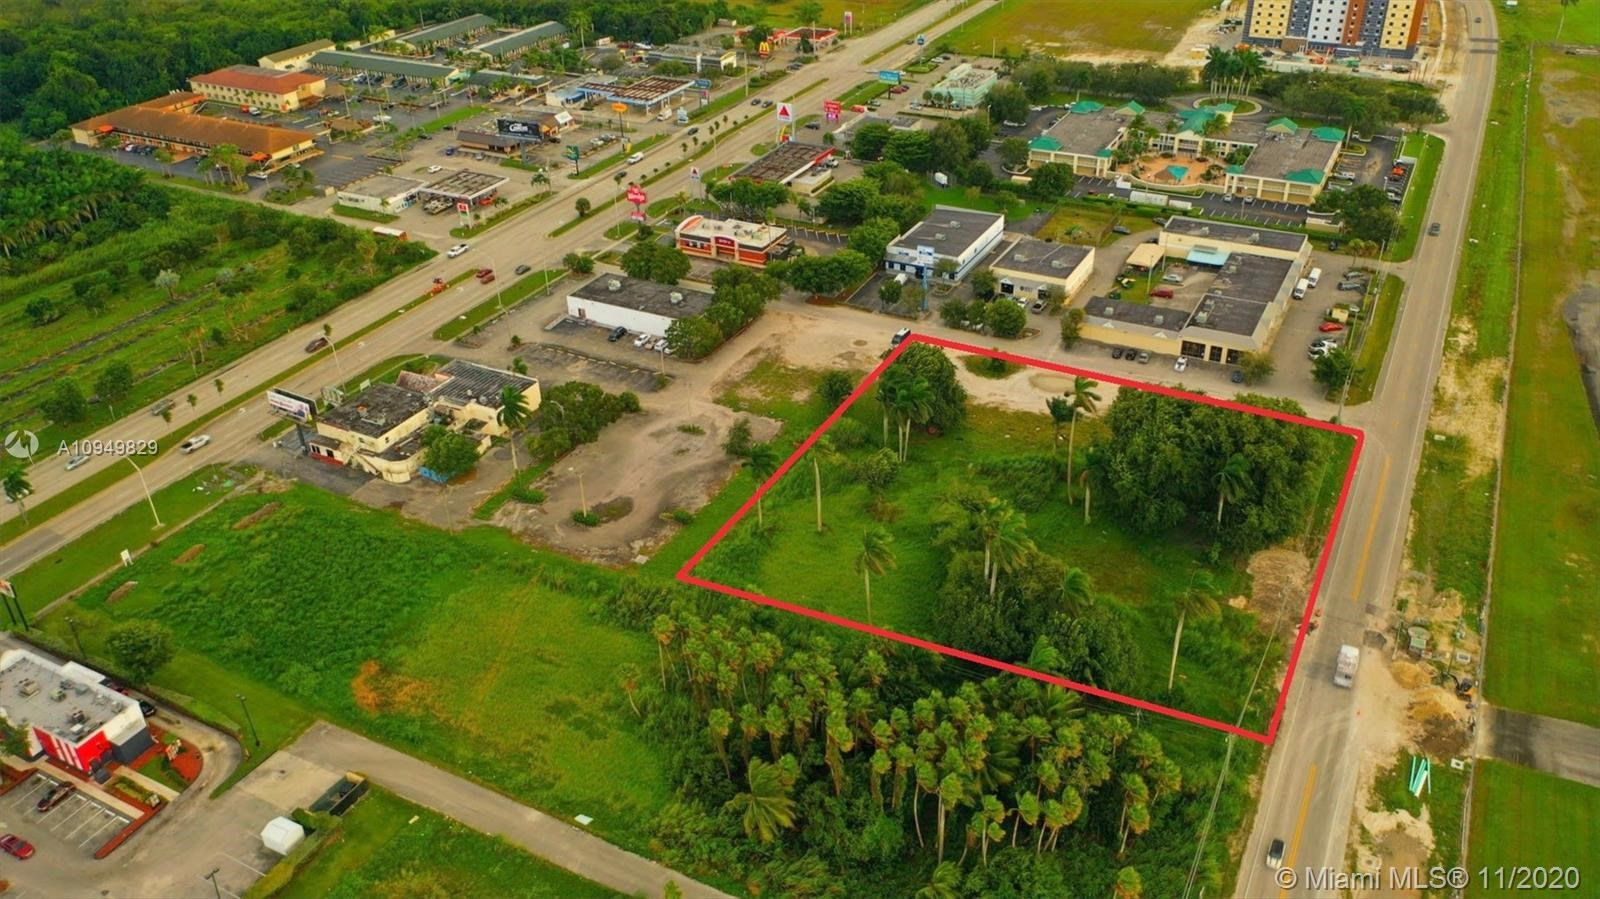 275 S Krome Ave, Florida City, FL 33034